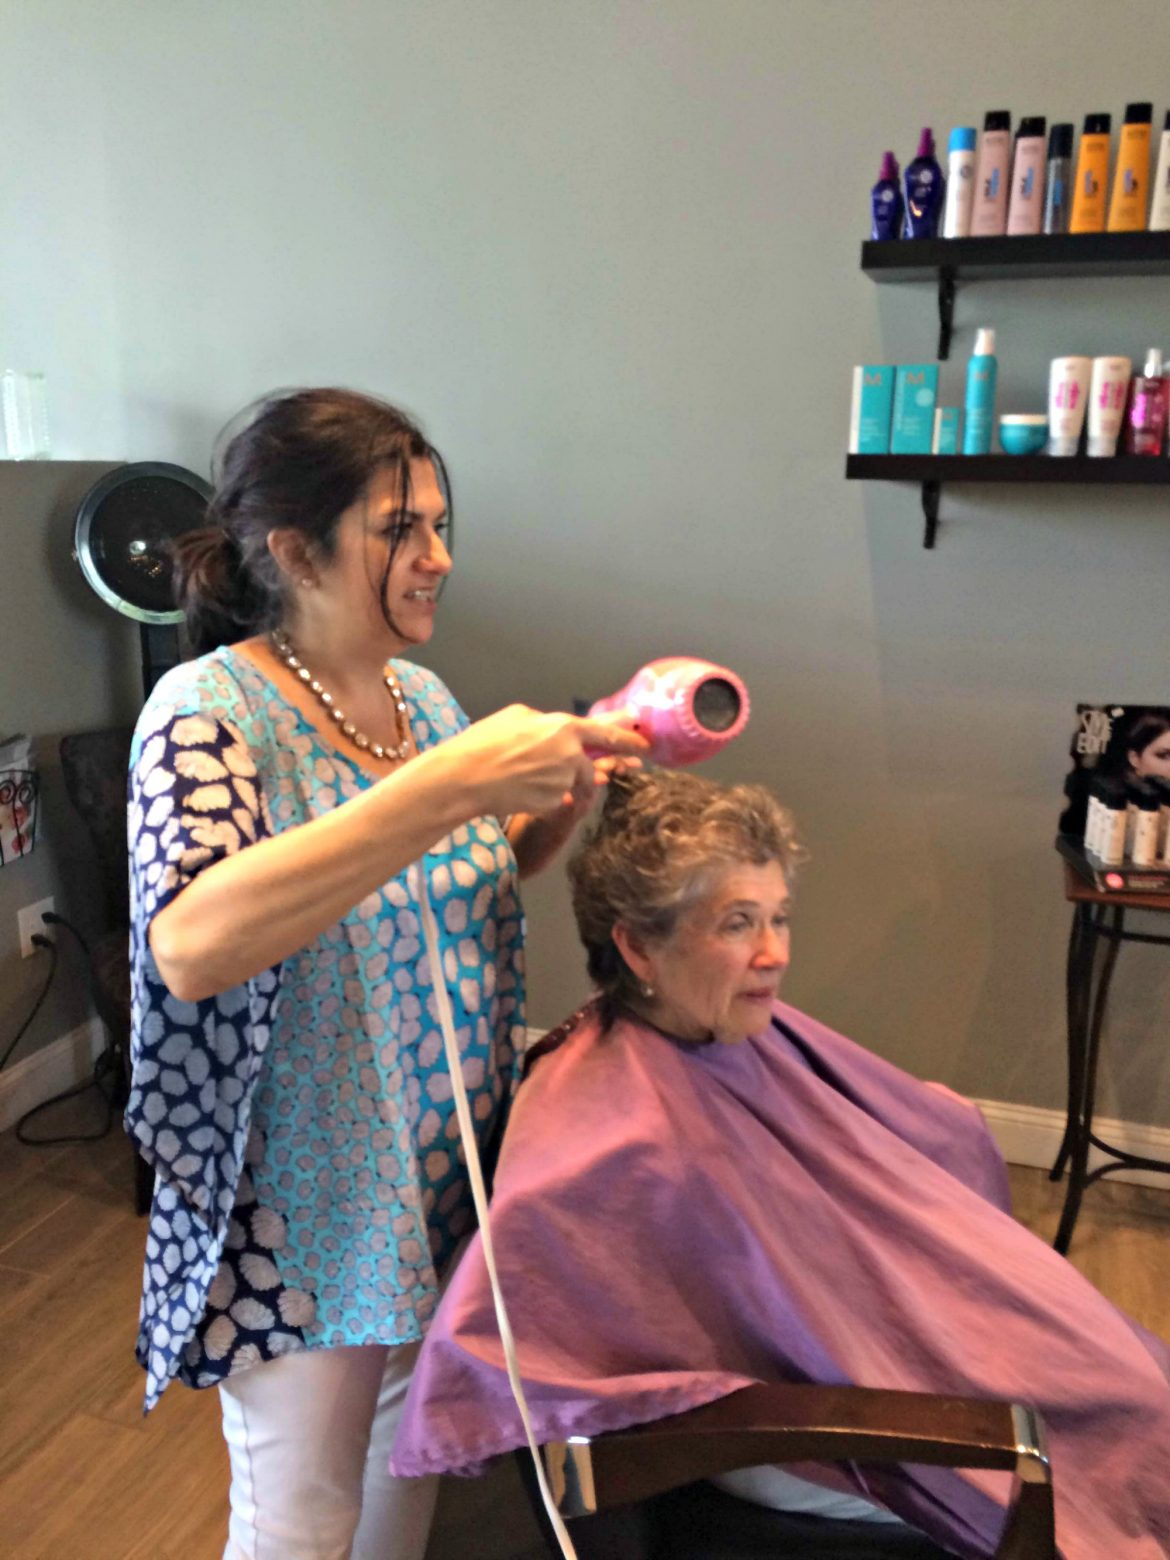 Stylist Gina Joubert works with a customer.